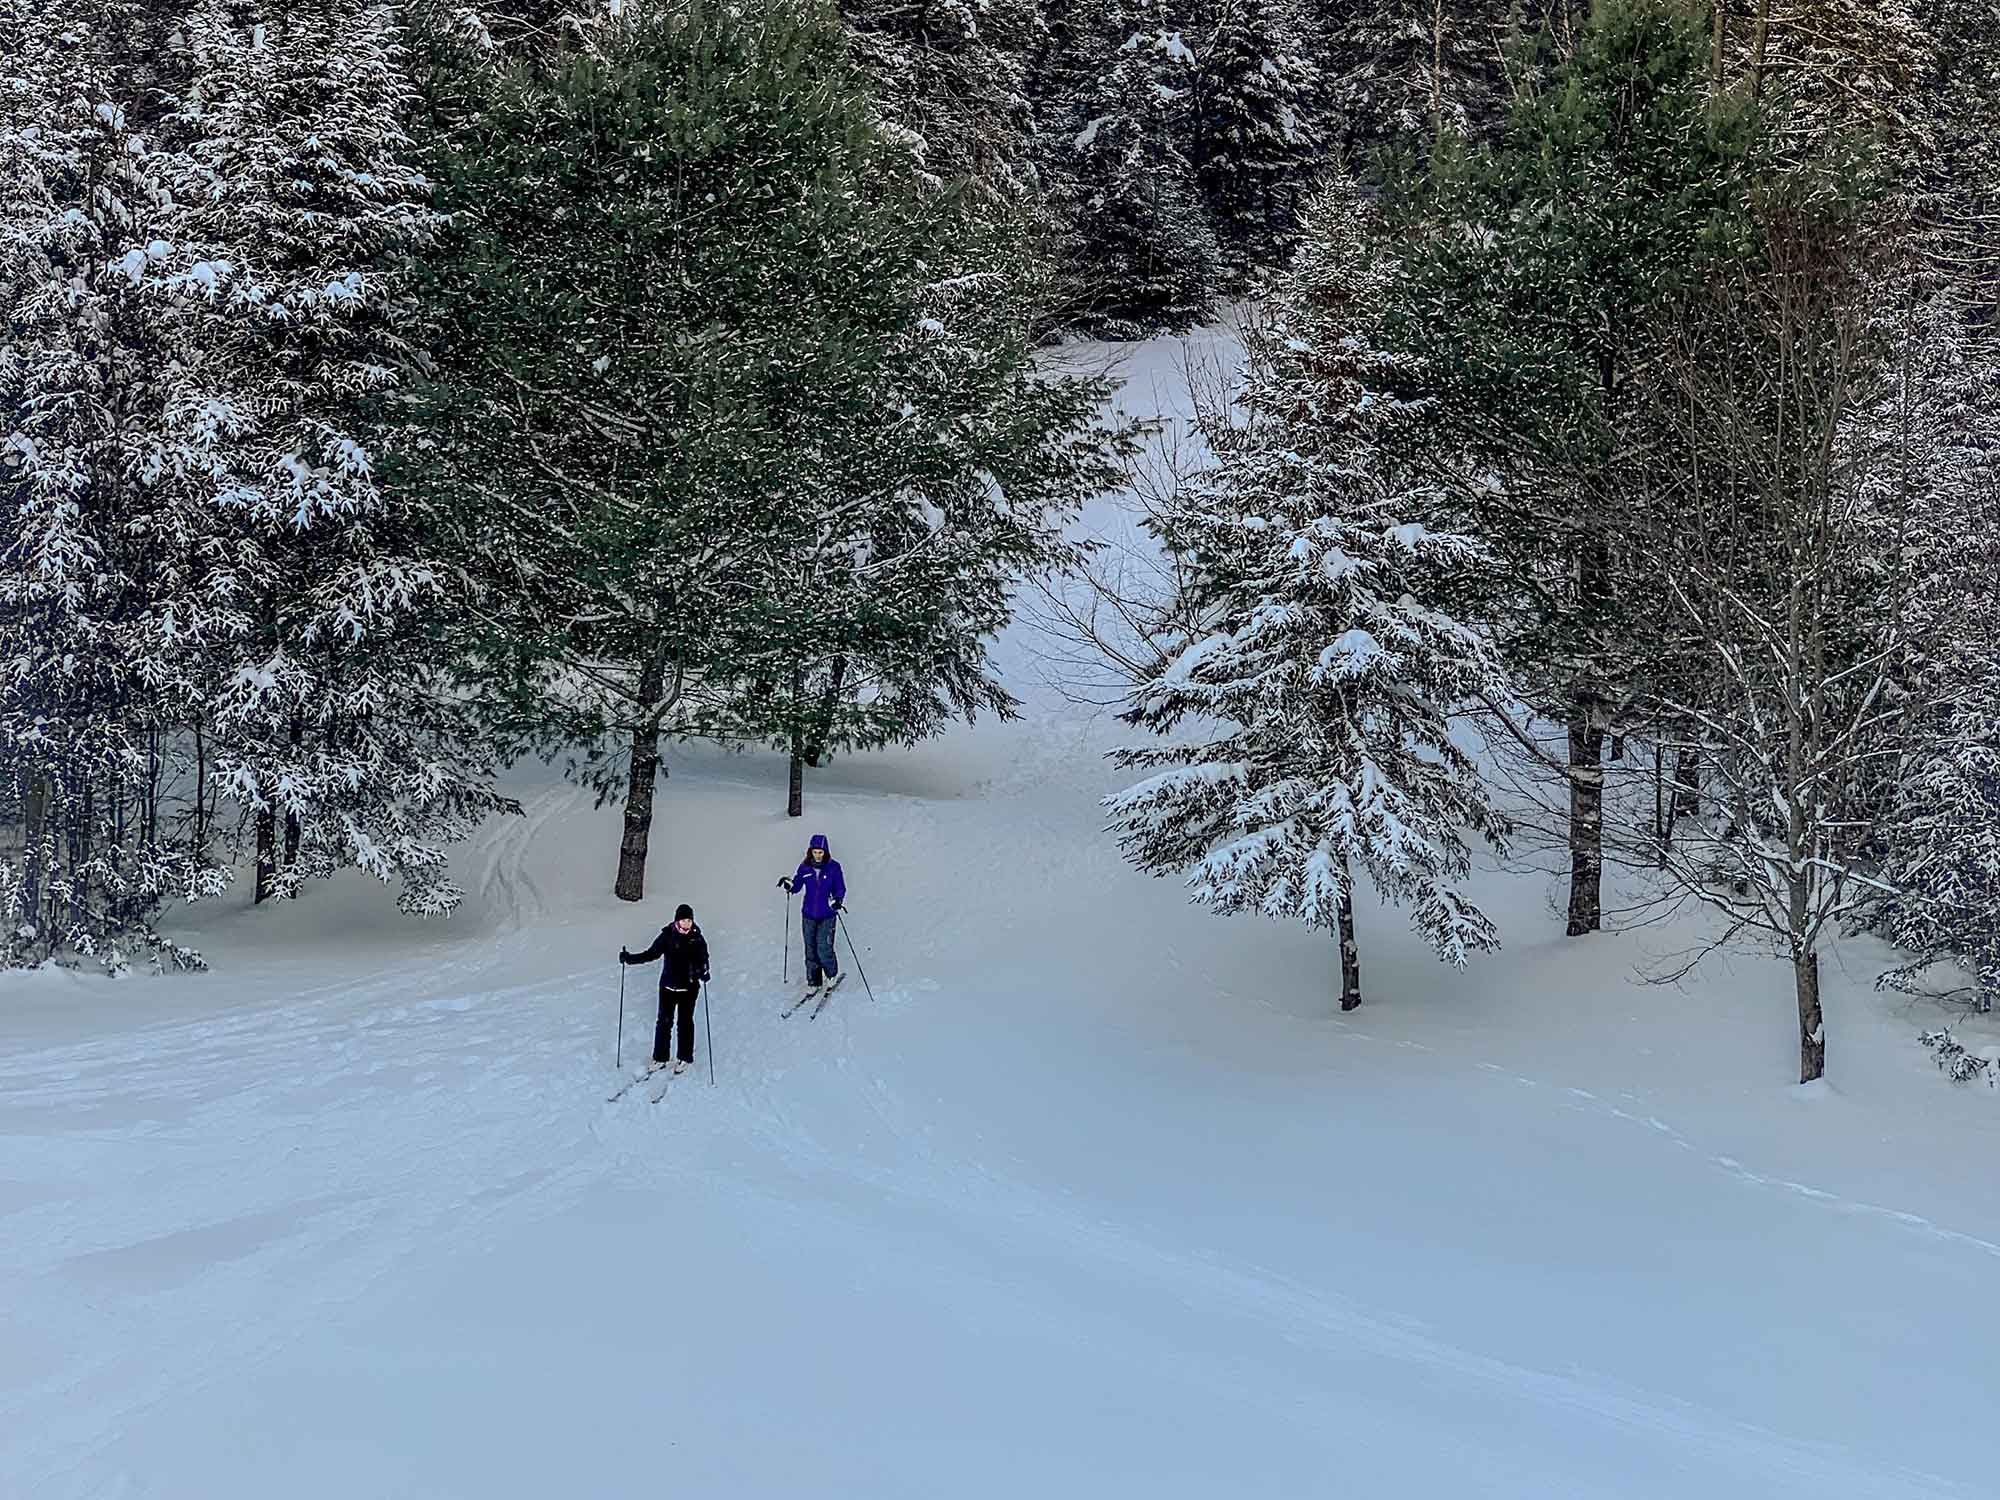 Two people skiing on the best cross country skis.